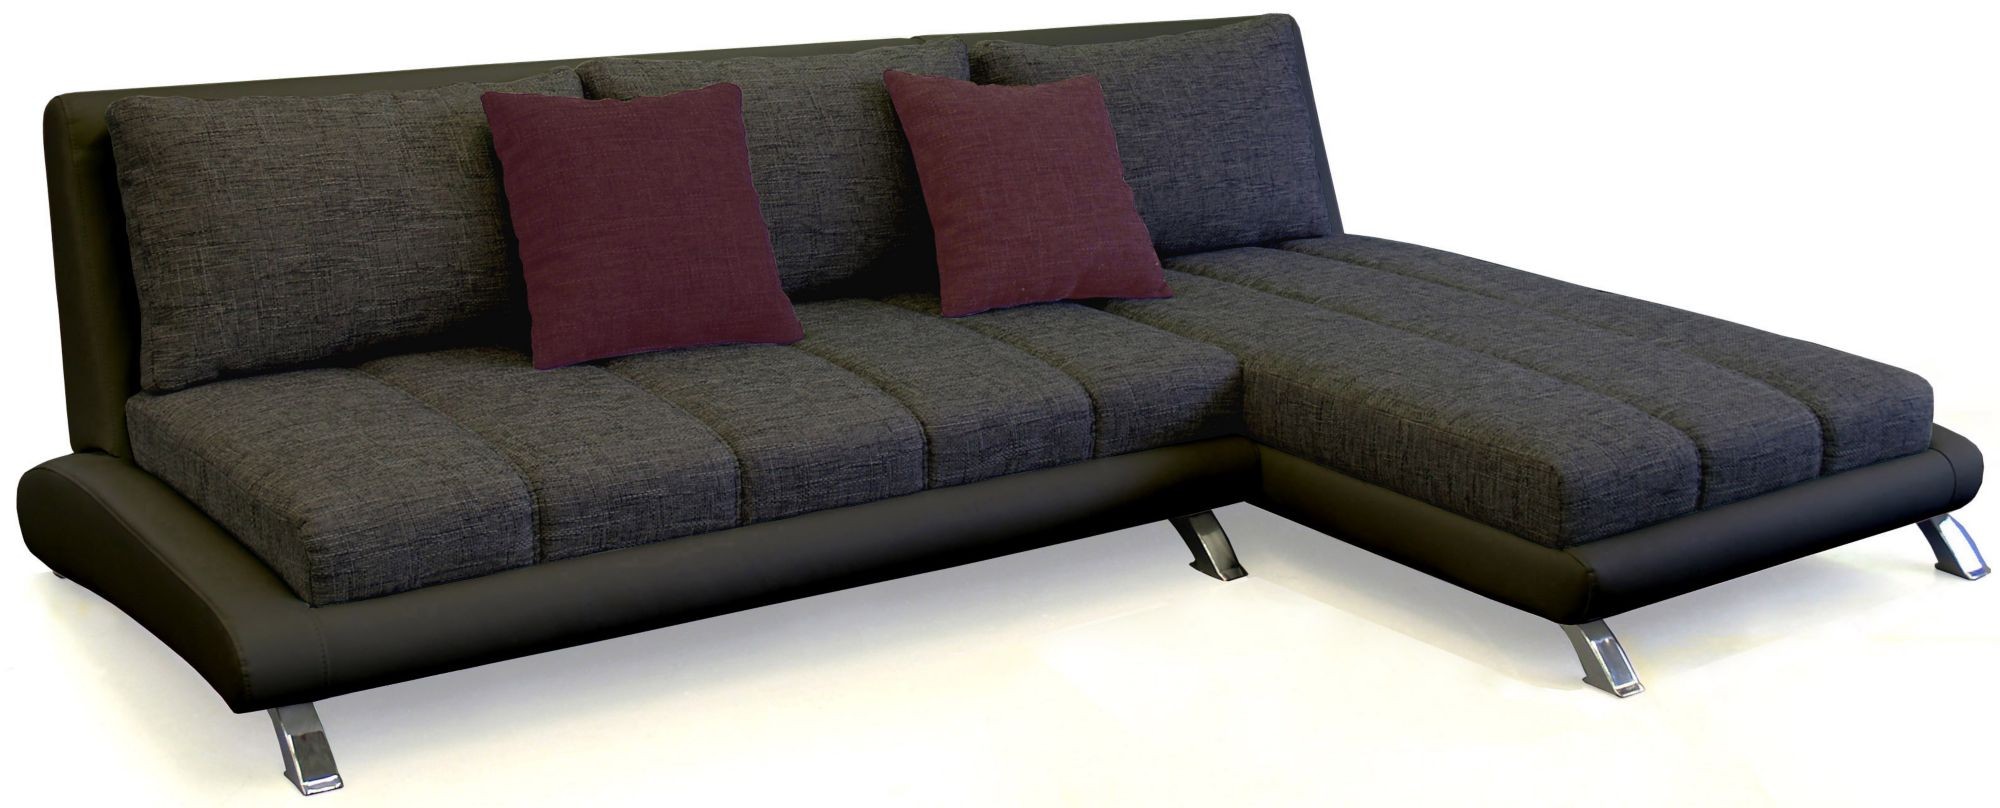 sofa xxl g nstig online kaufen beim schwab versand. Black Bedroom Furniture Sets. Home Design Ideas